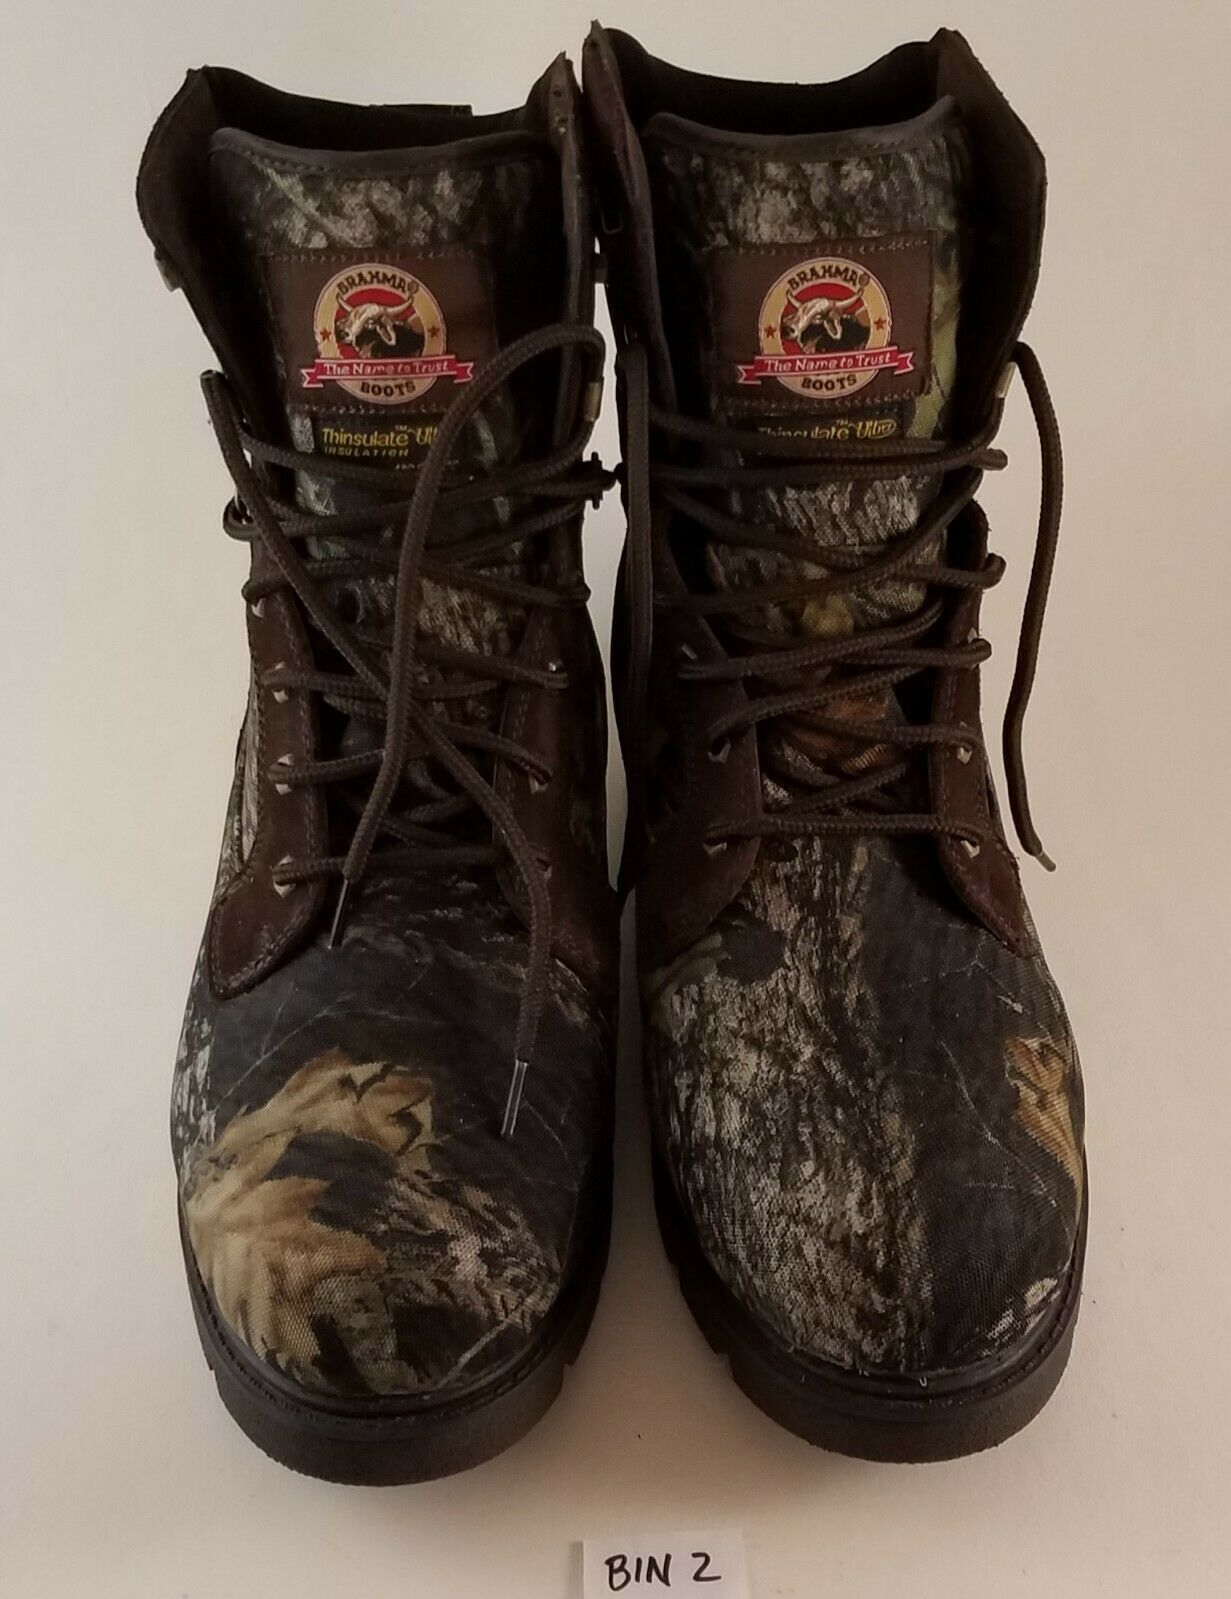 Brahma Hunter 2559454 Camo lace up boot Thinsulate Ultra Men's  size 12  new products novelty items